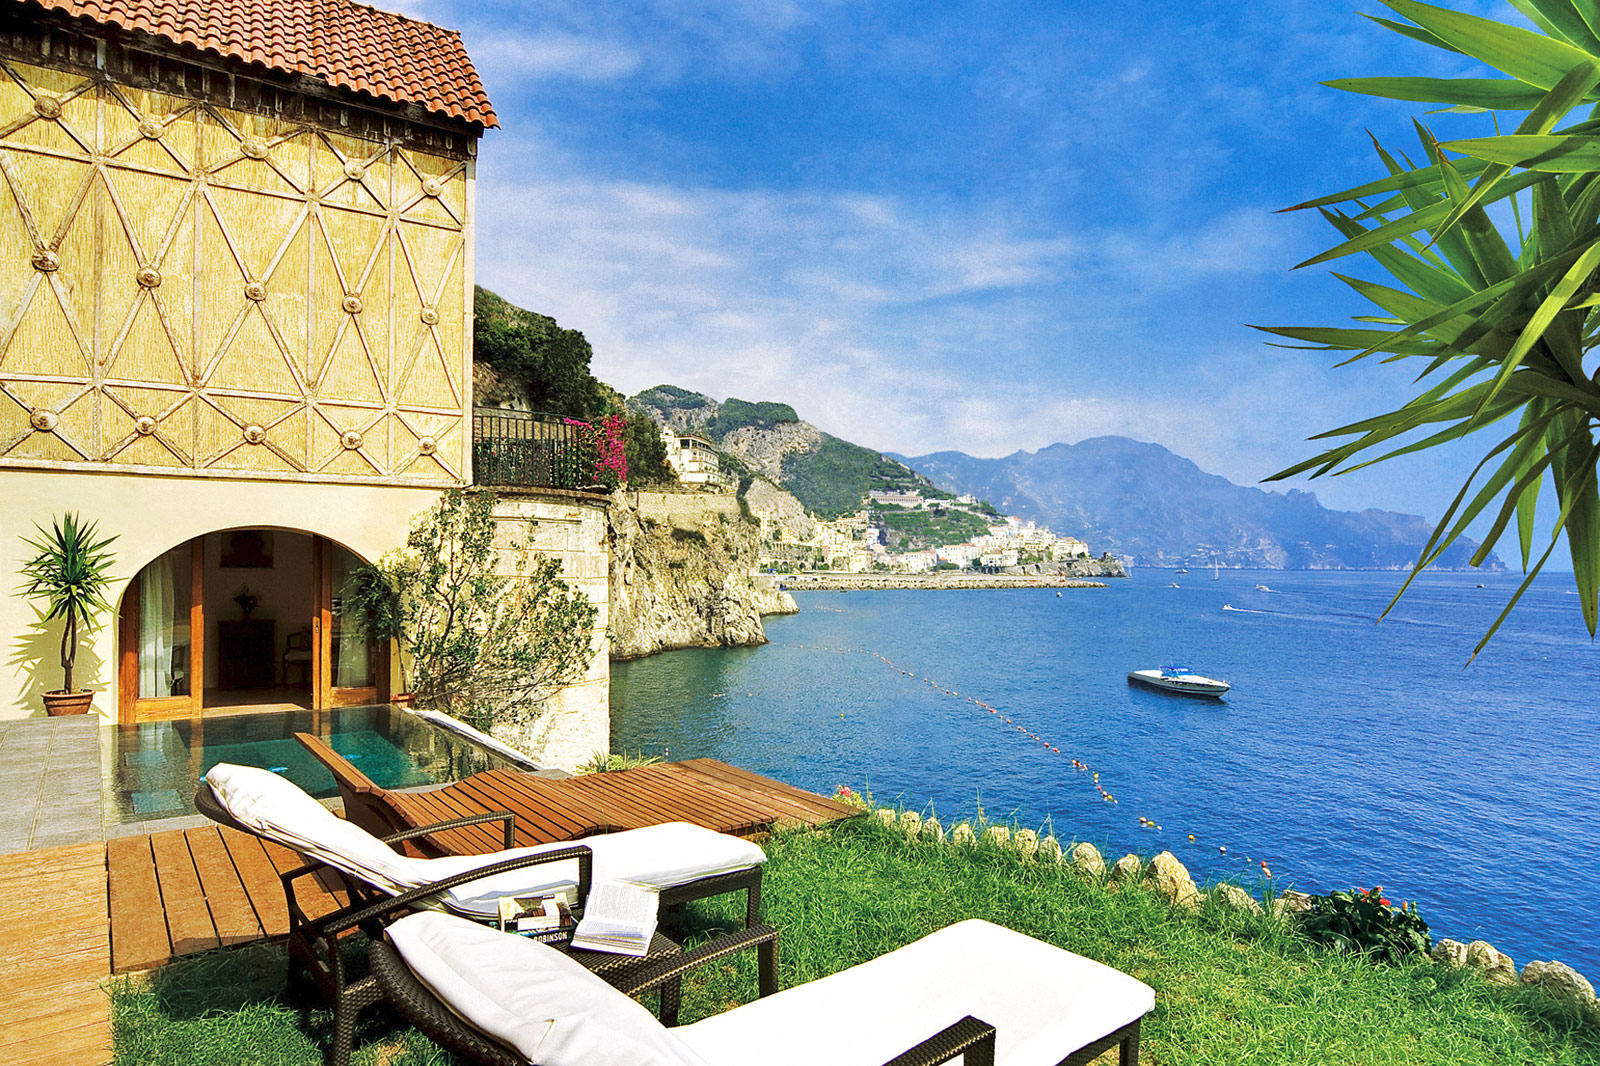 The Sophisticated Charm Of The Amalfi Coast's Hotel Santa Caterina